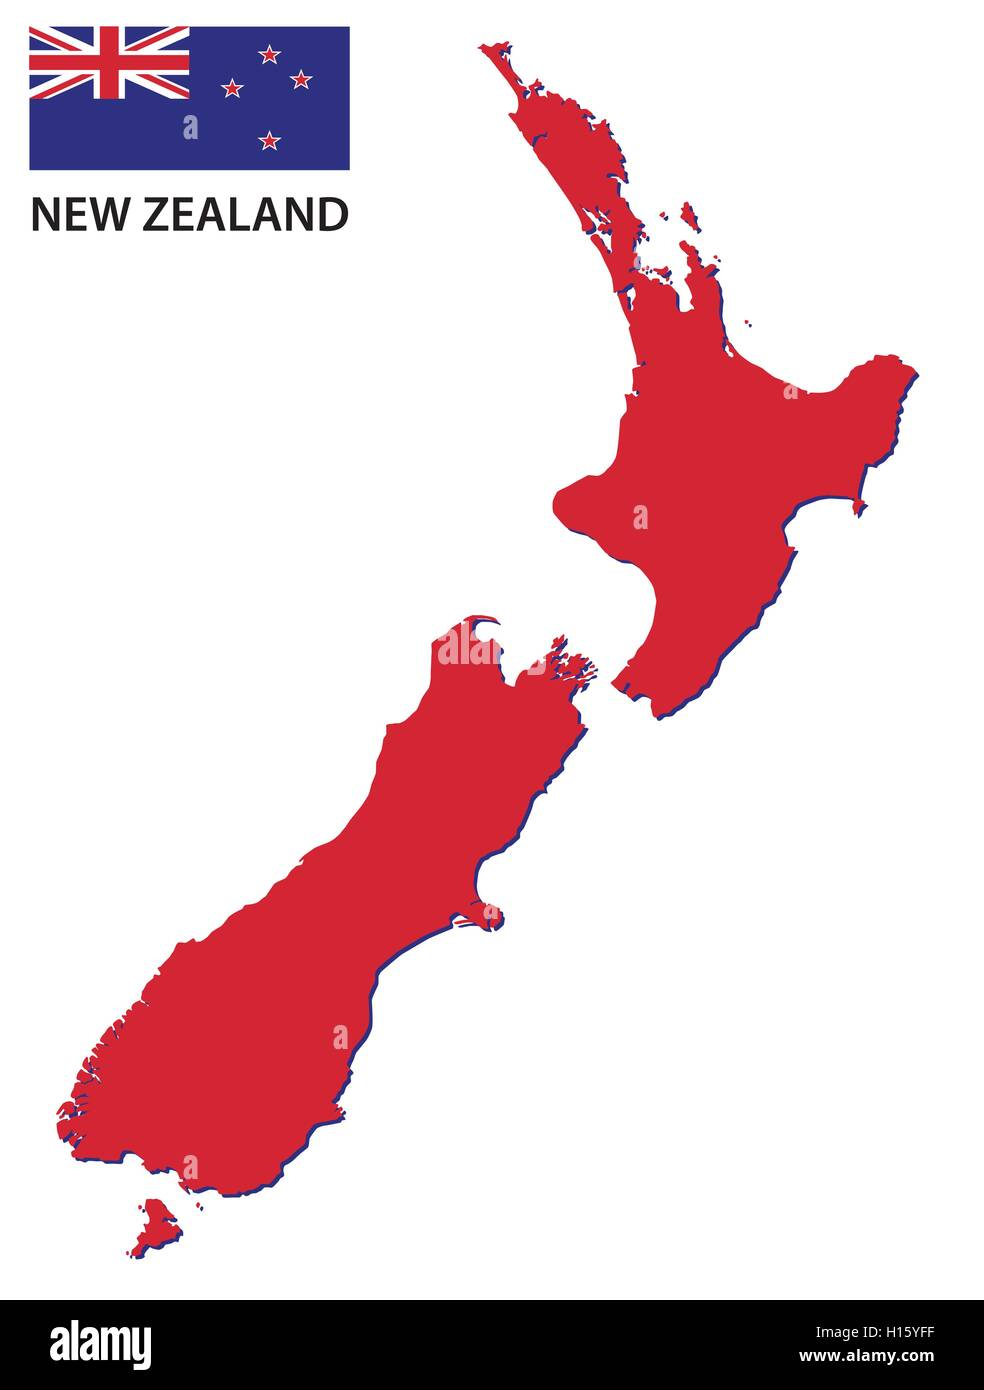 new zealand map with flag - Stock Image